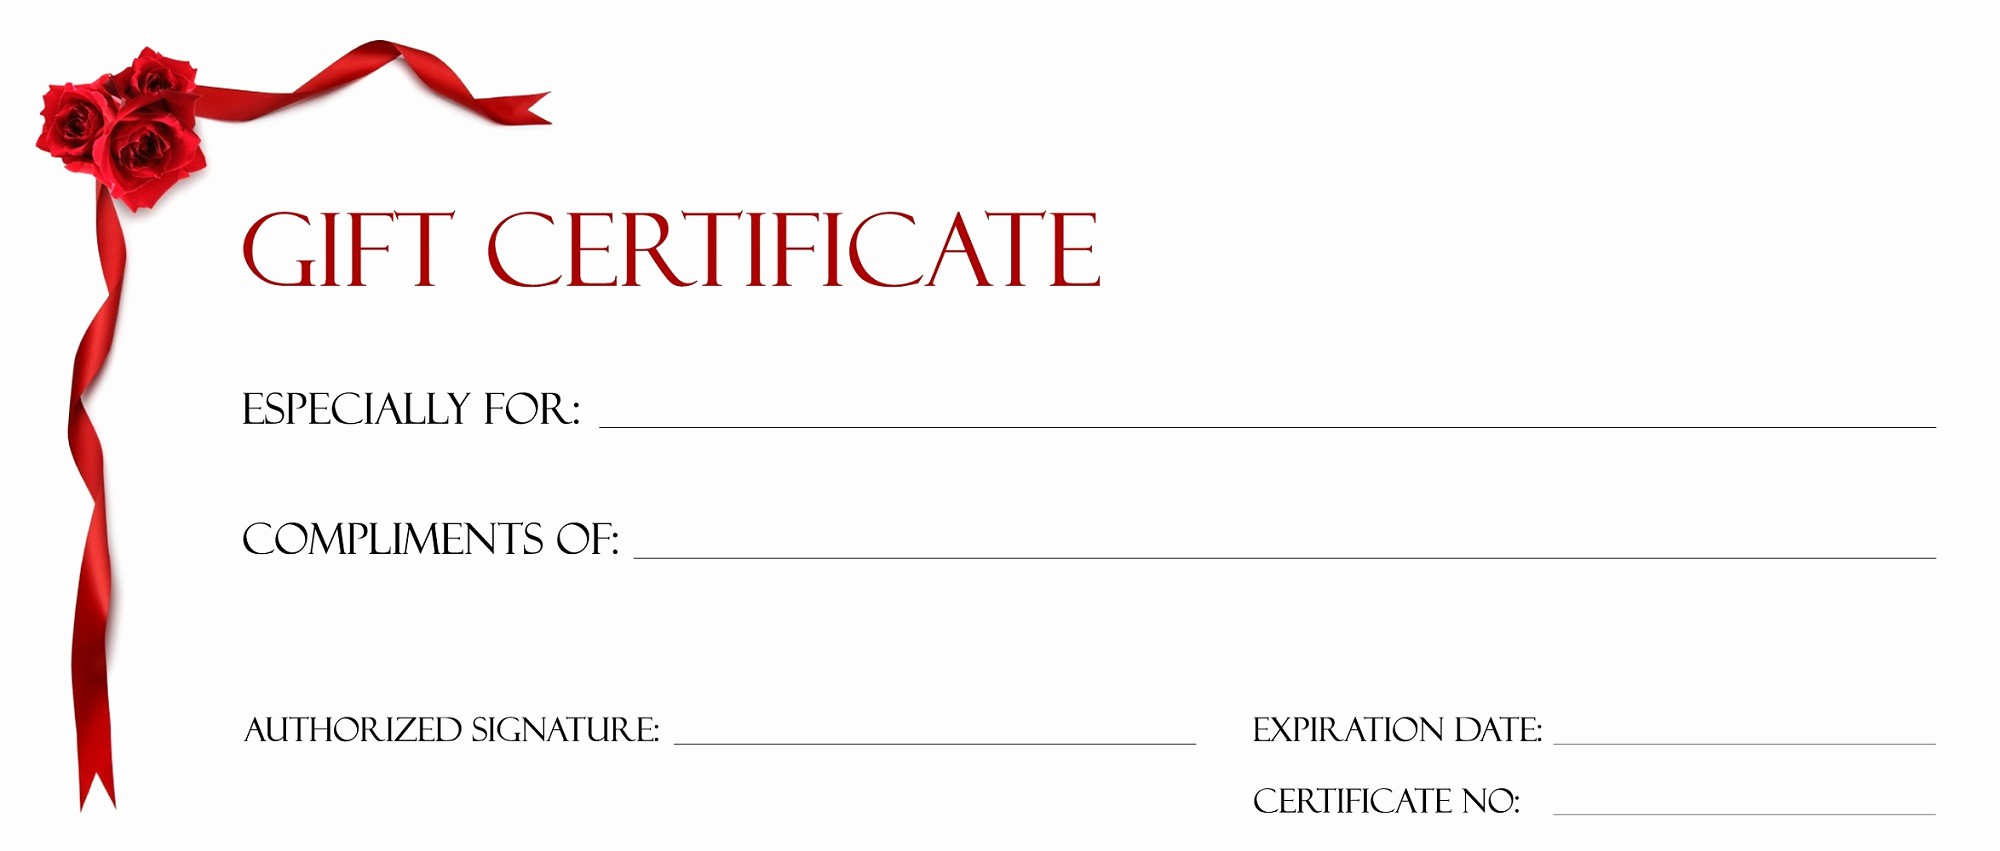 Free Gift Certificates to Print Beautiful Gift Certificate Template for Kids Blanks